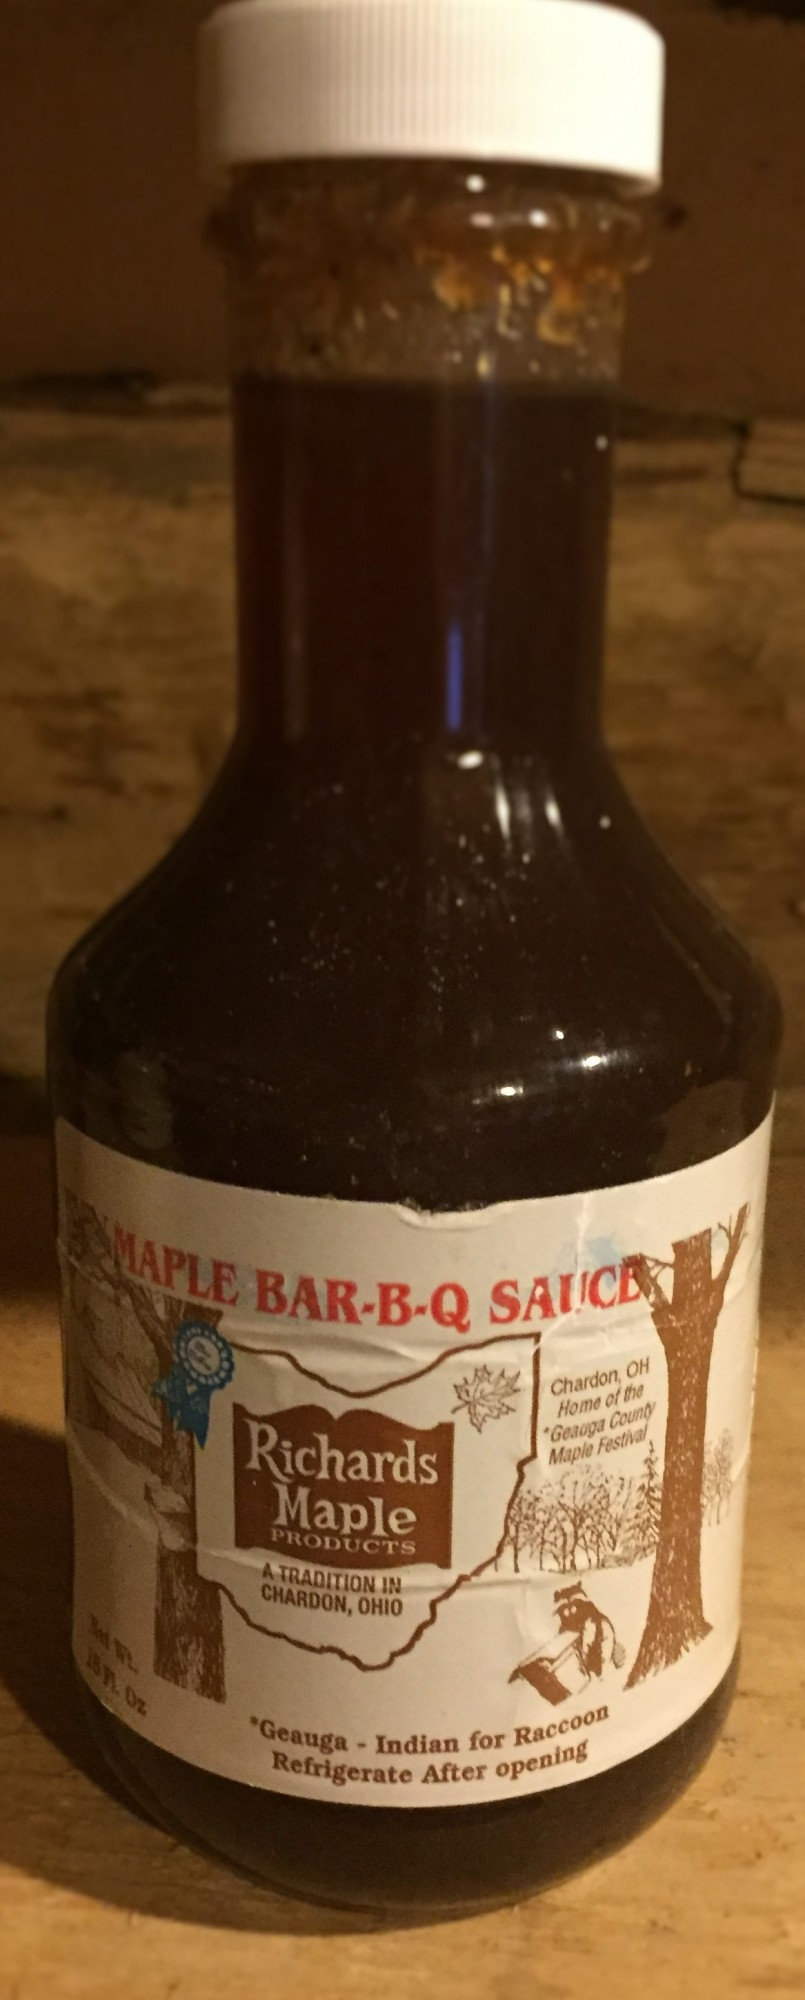 Maple Bar-B-Q Sauce